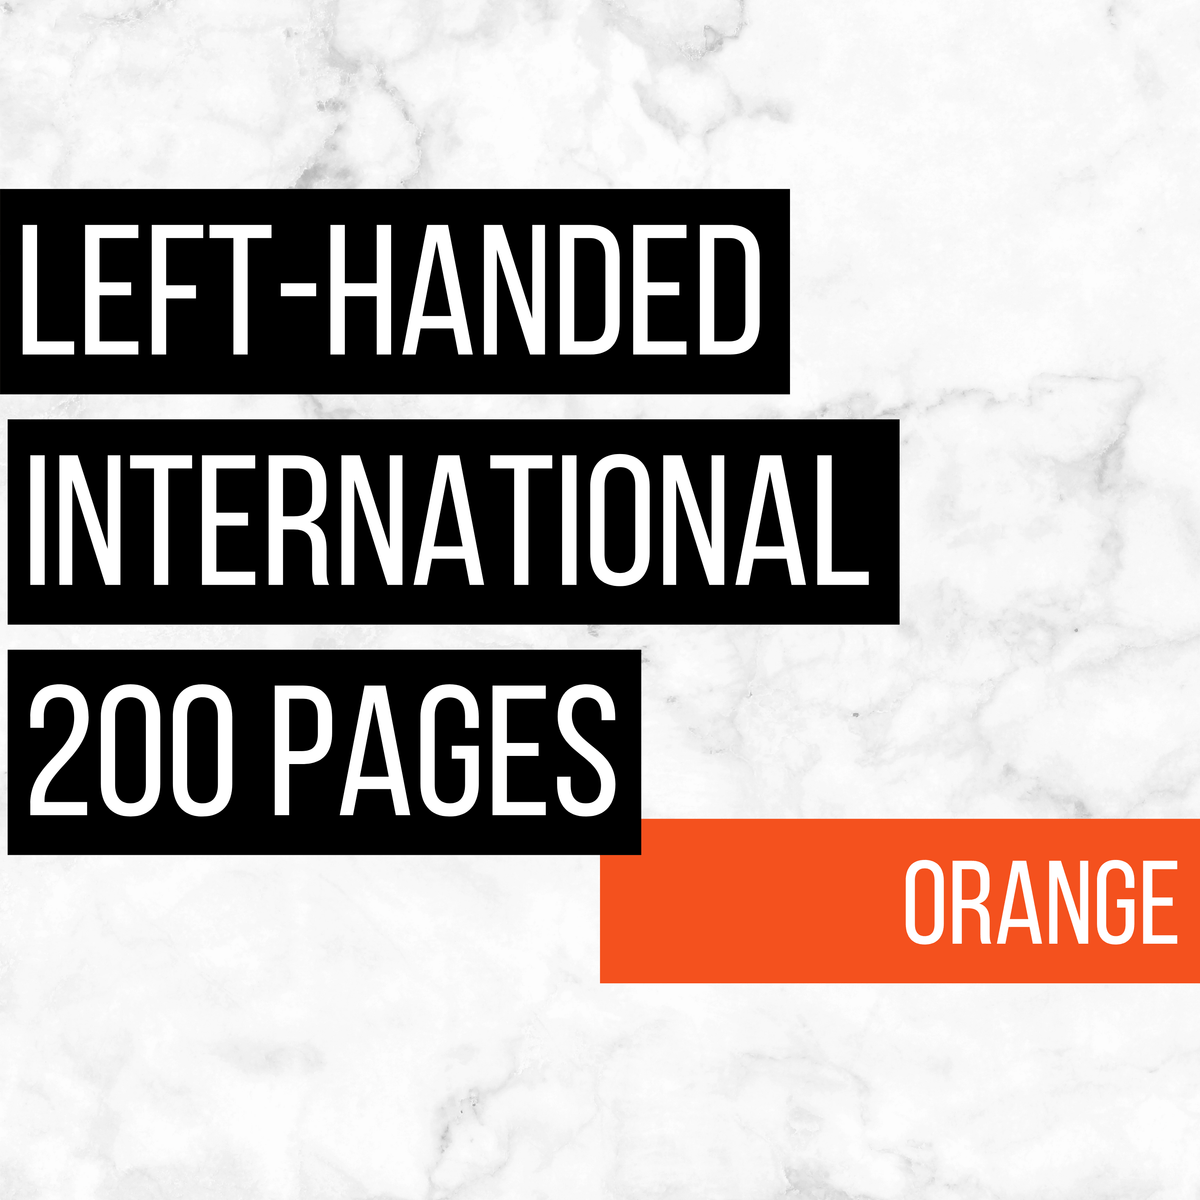 International Deluxe Left-Handed Family History Bundle - Orange (200-Page Digital Download)